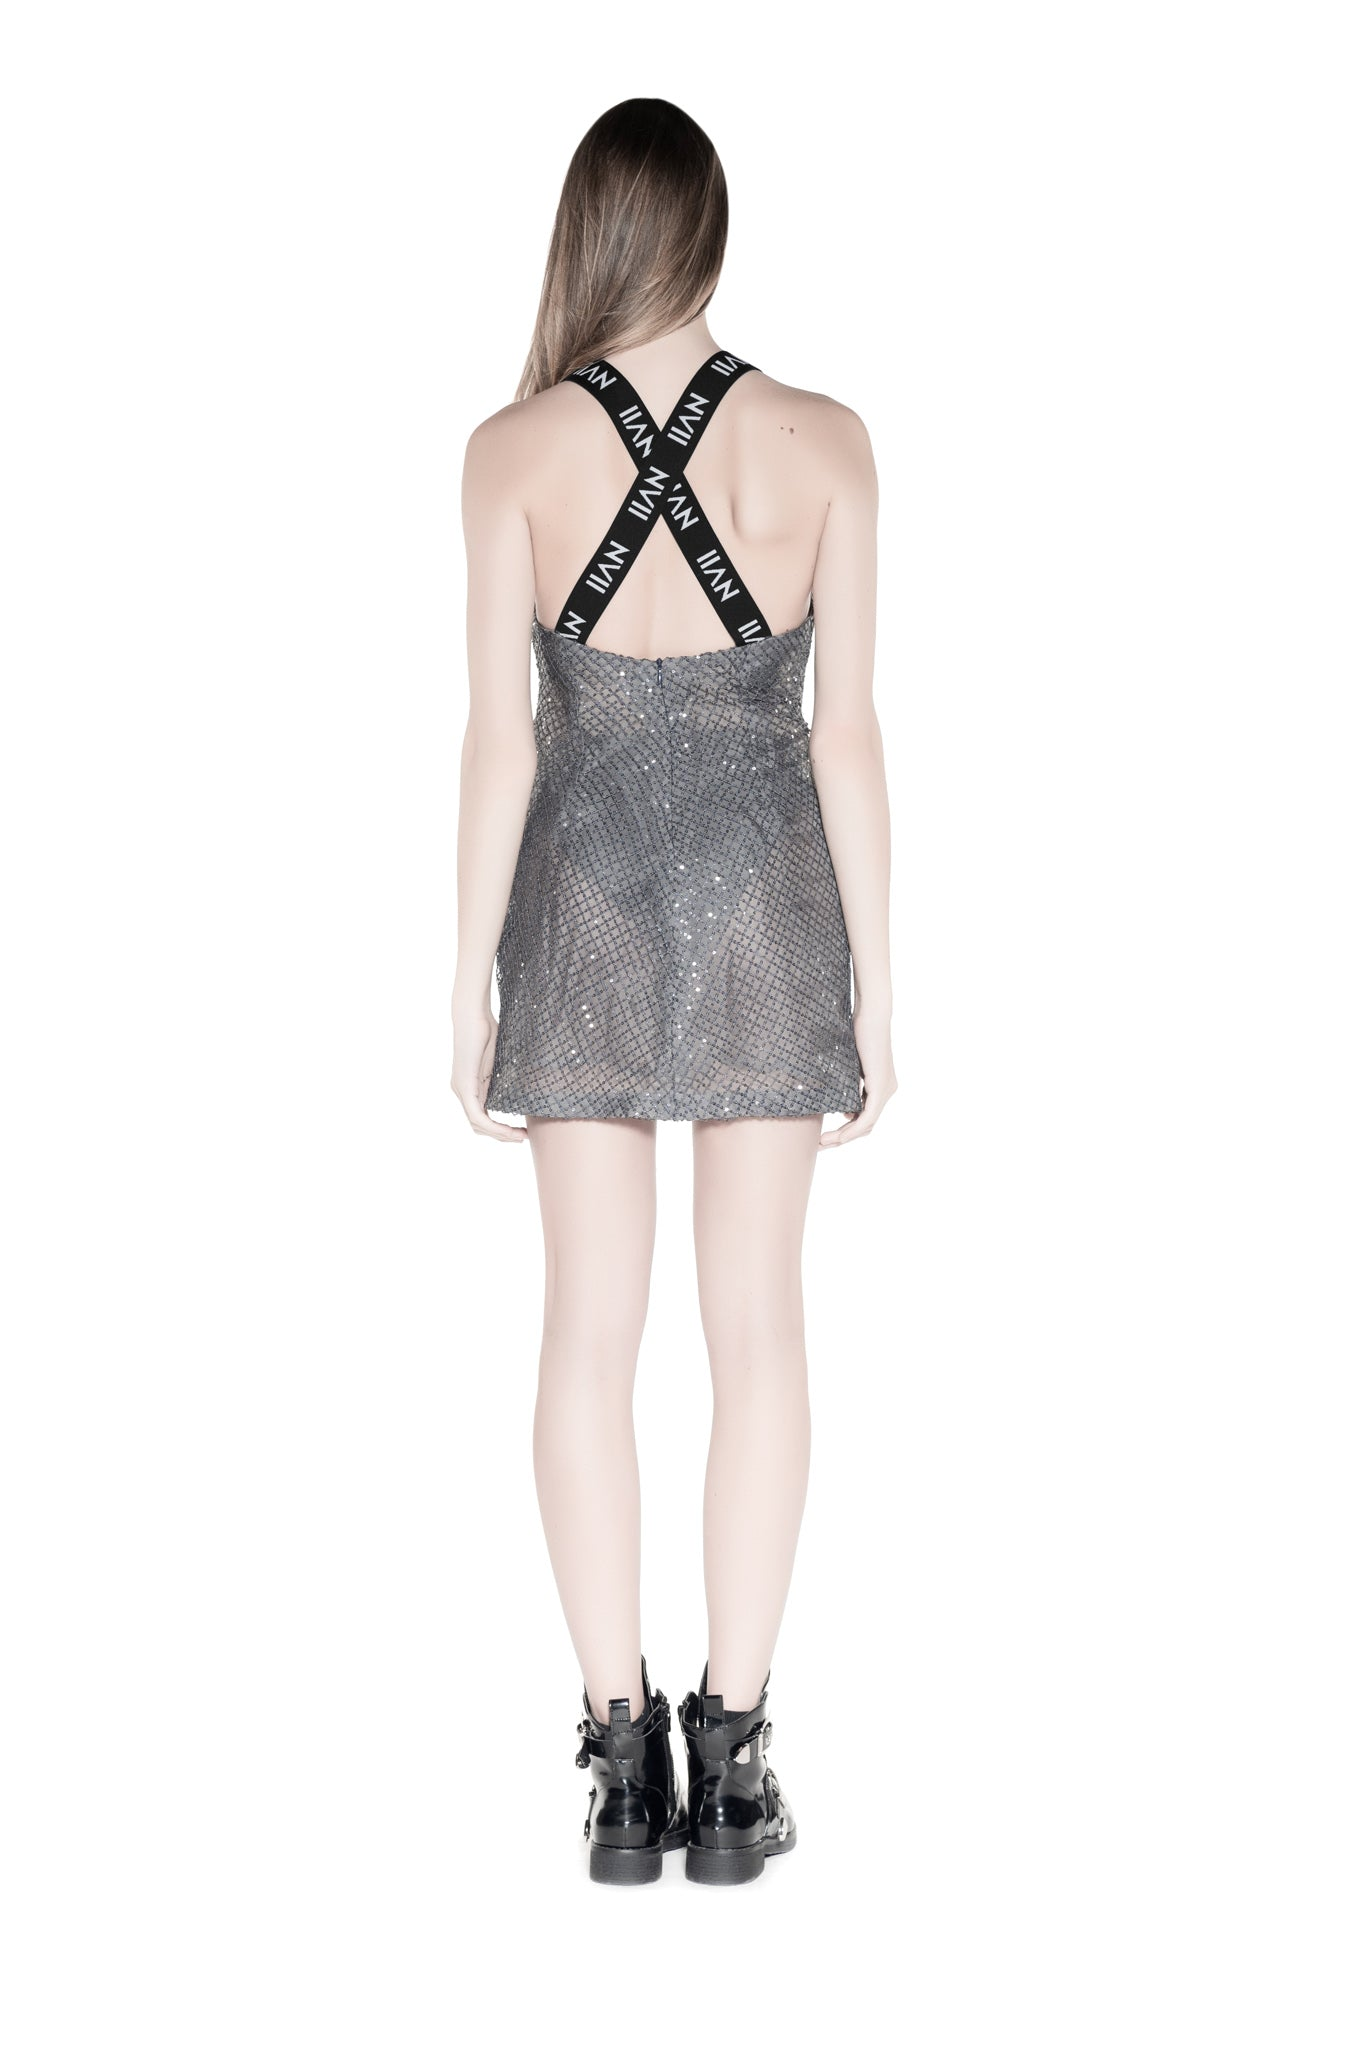 NOMAD VII - HUYANA GREY BEADED LACE HALTER DRESS - NOMAD VII X ANNE BOWEN